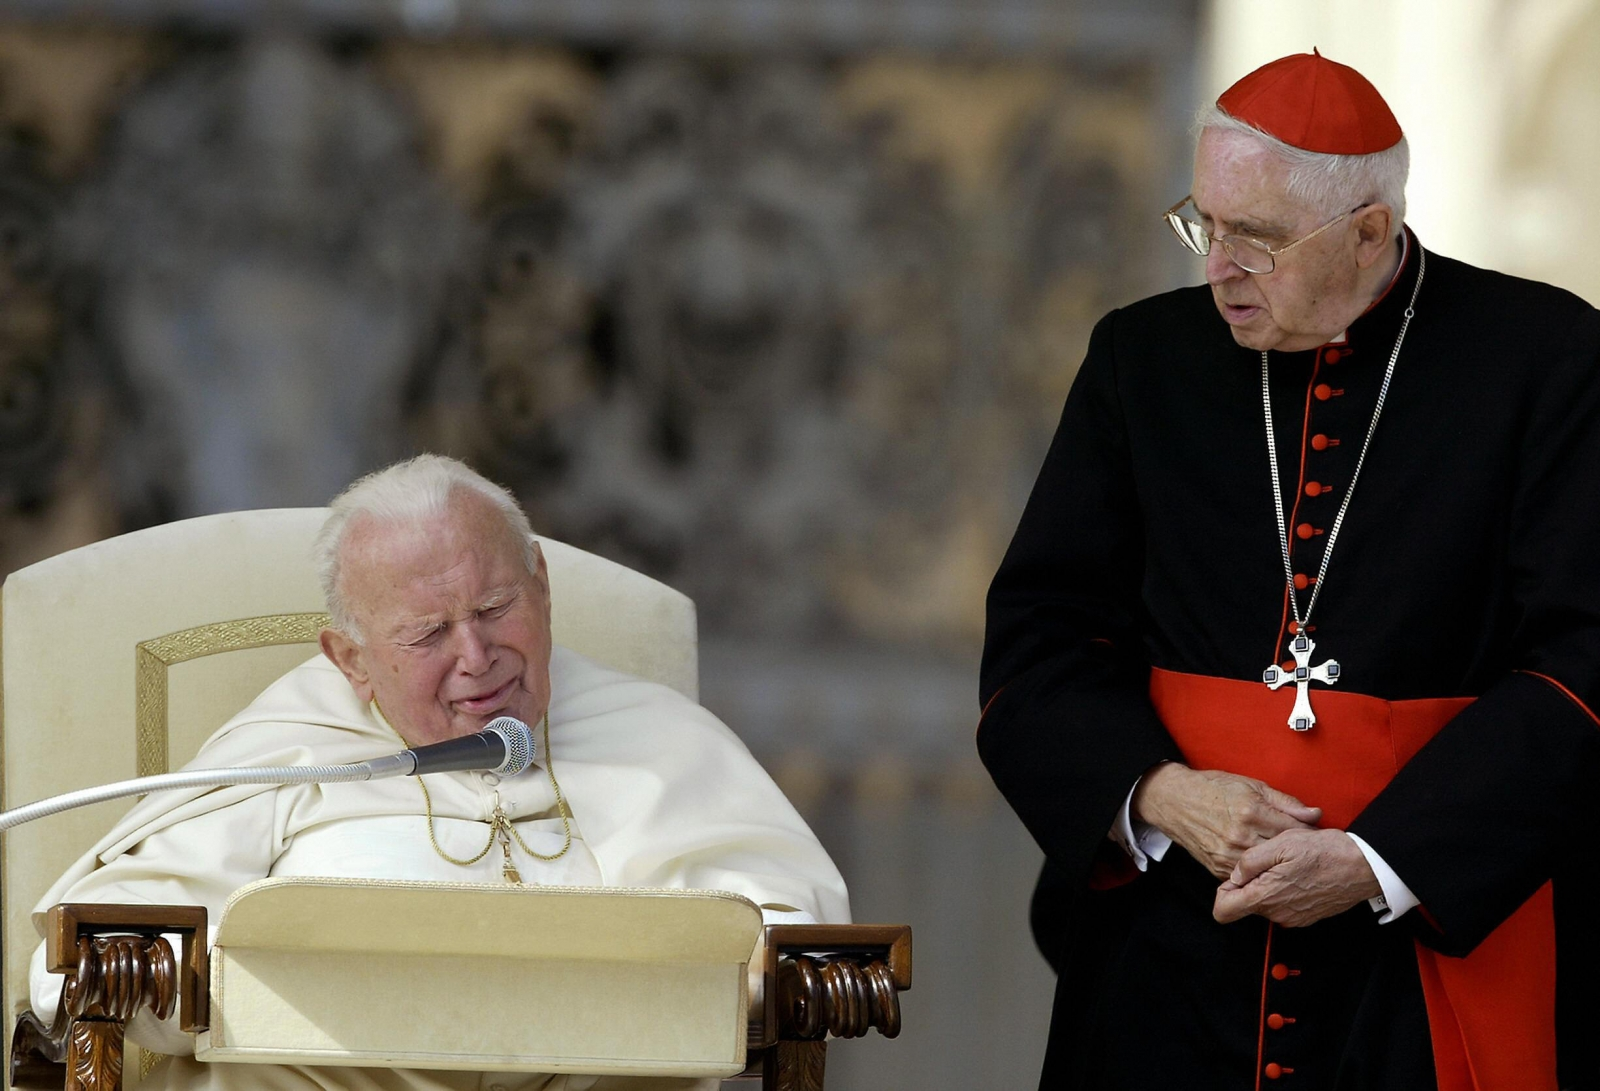 Argentinean Cardinal Jorge Maria Mejia (R) looks at Pope John Paul II during his weekly general audience in St Peter's square at the Vatican 08 October 2003